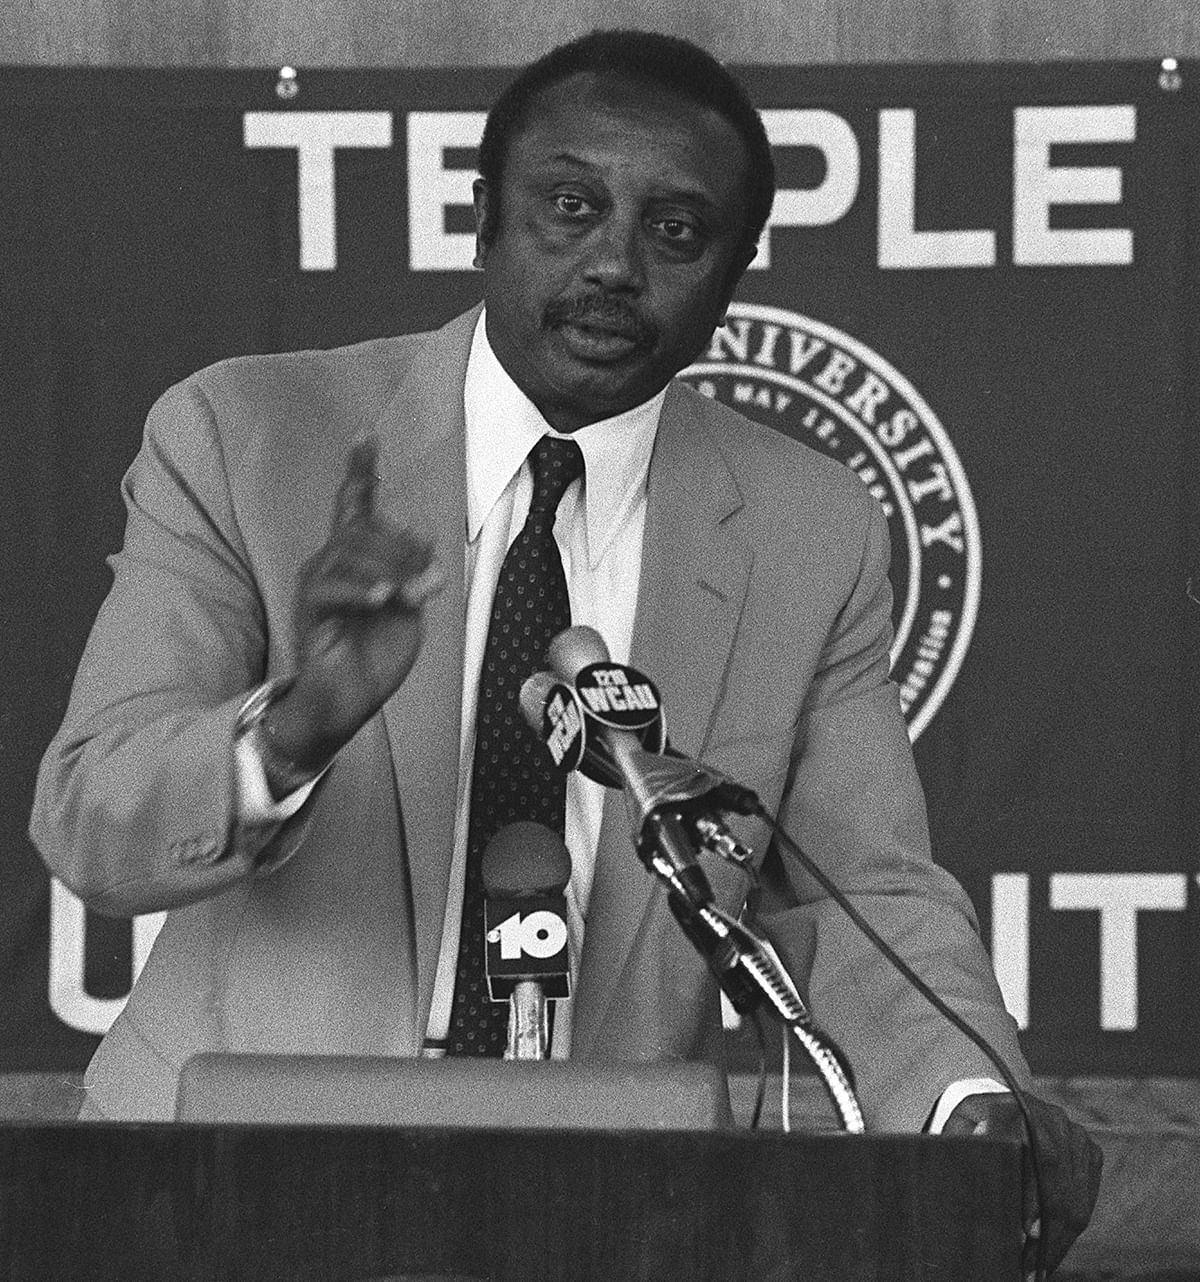 FILE - In this Aug. 18, 1982, file photo, John Chaney speaks during a news conference at Temple University in Philadelphia, the day after being named their NCAA college basketball head coach.